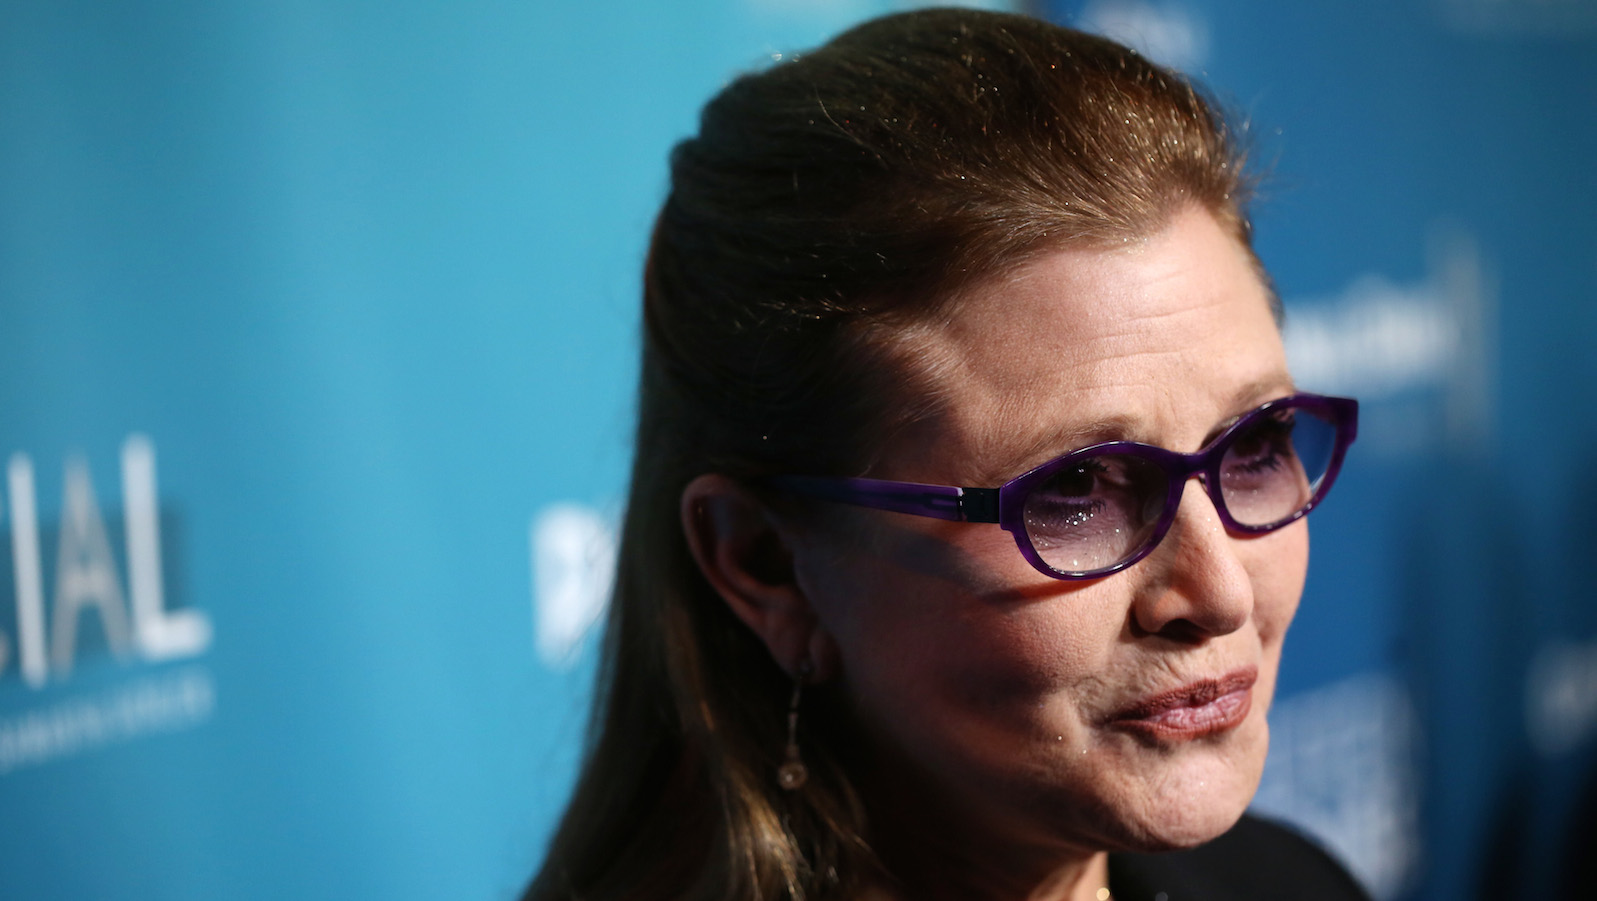 Carrie Fisher arrives at Backstage At The Geffen Gala on Saturday, March 22, 2014, in Los Angeles. (Photo by Matt Sayles/Invision for Geffen Playhouse/AP Images)